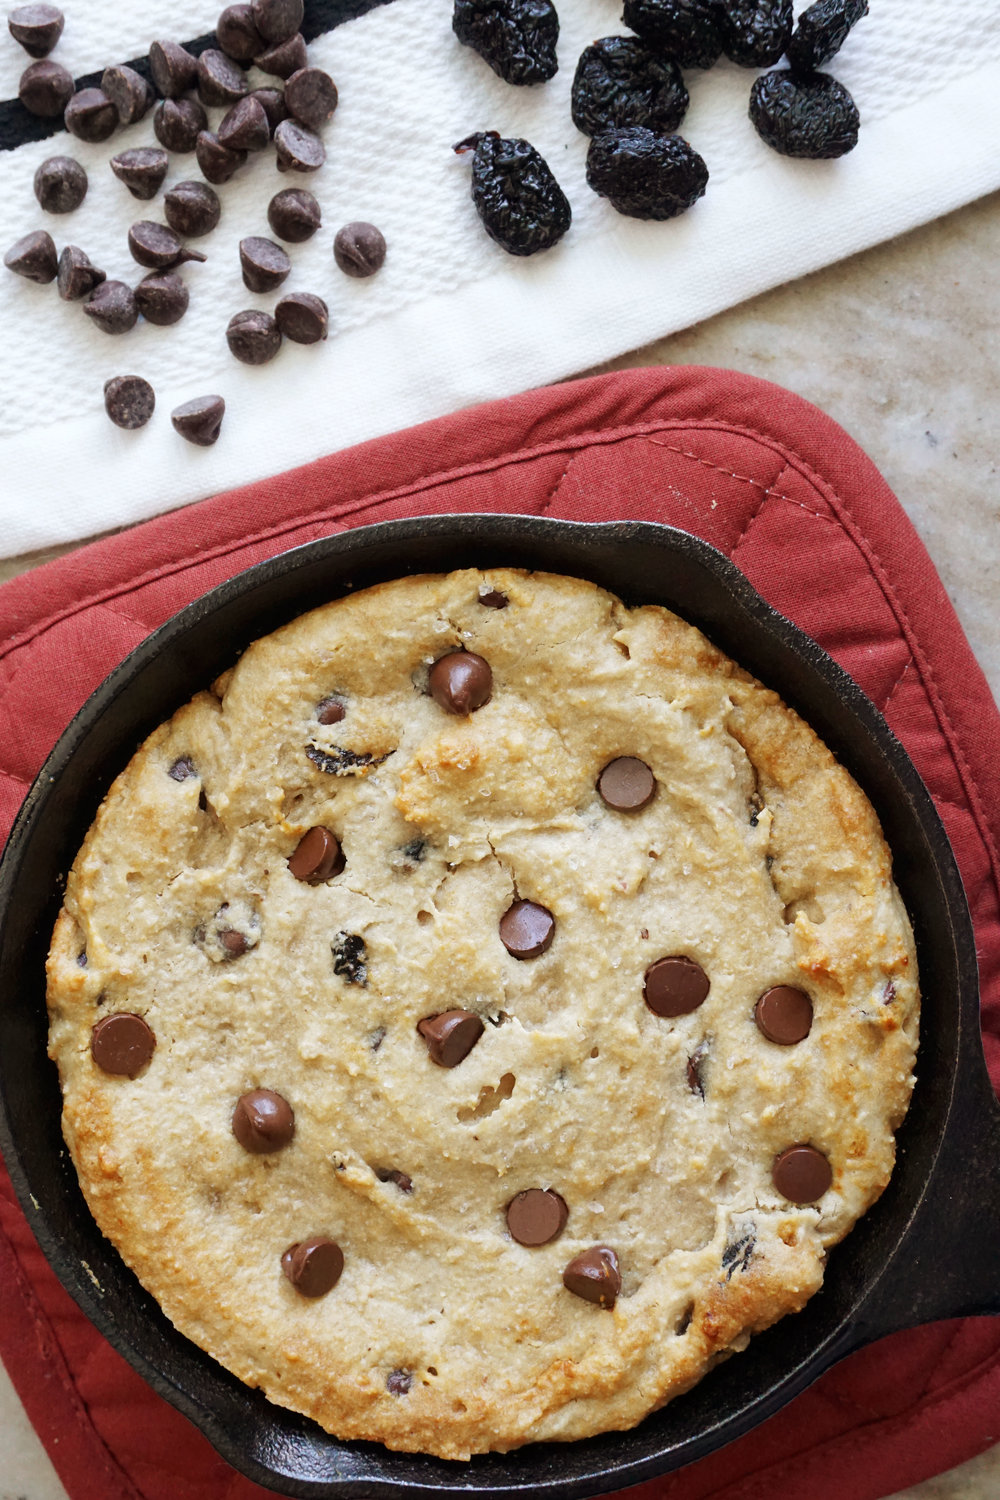 Cherry Garcia Cookie Skillet (Vegan, Grain-free)